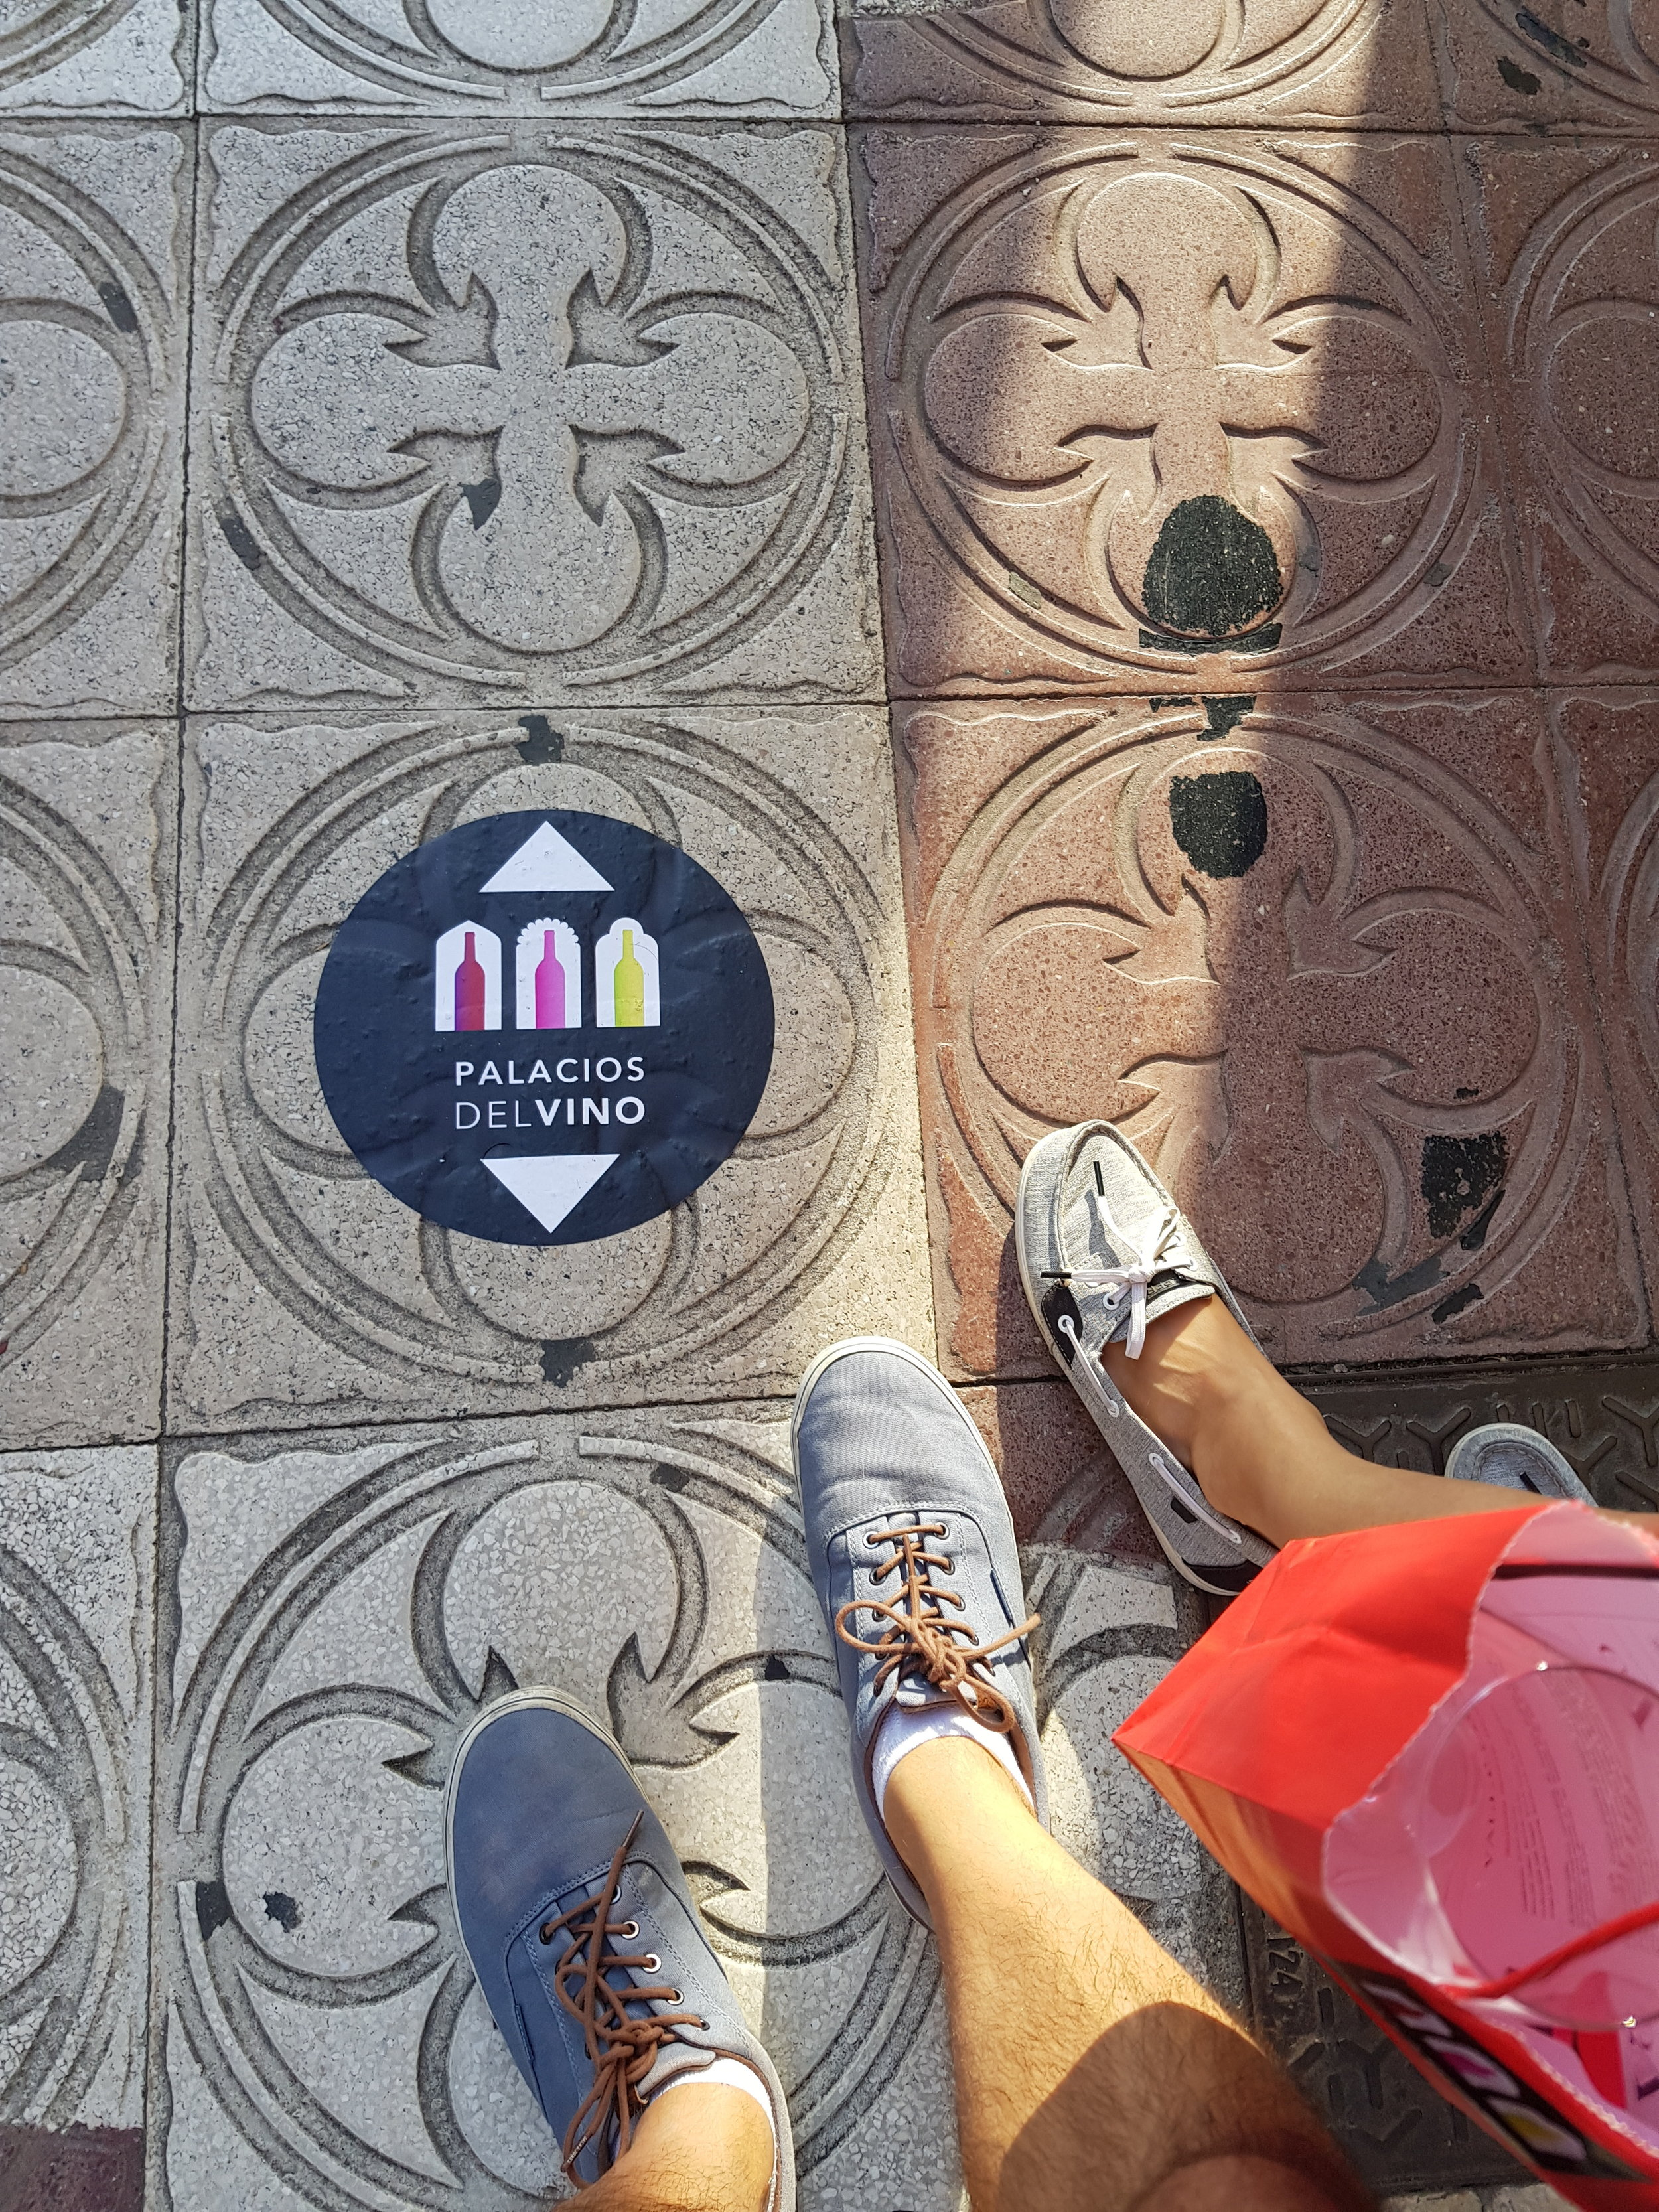 The  Palacios de Vinos  event provided us the most unique tour of Burgos and it felt like such an adventure following these stickers to the next location.